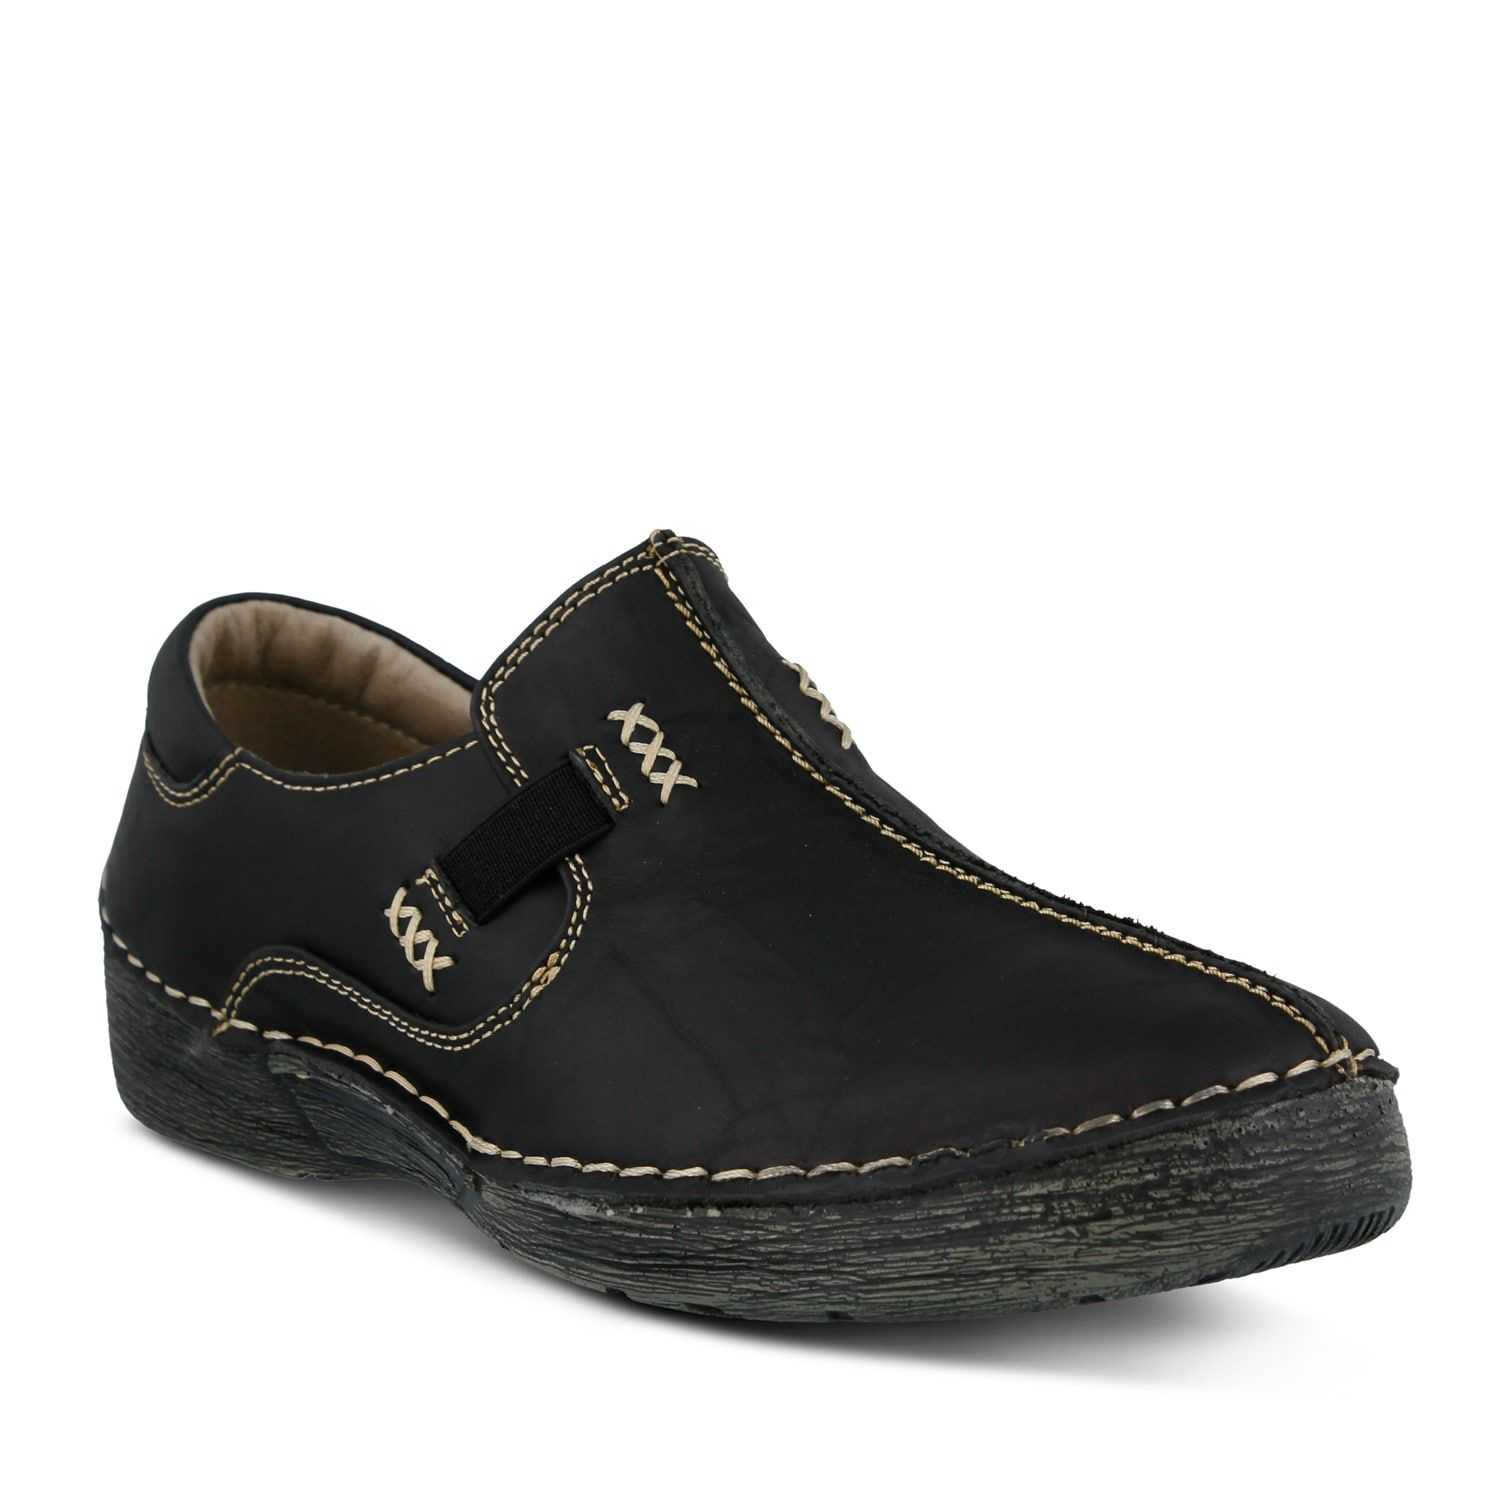 e45d29dd7a57 Spring Step Coed Women s Slip-On Shoes